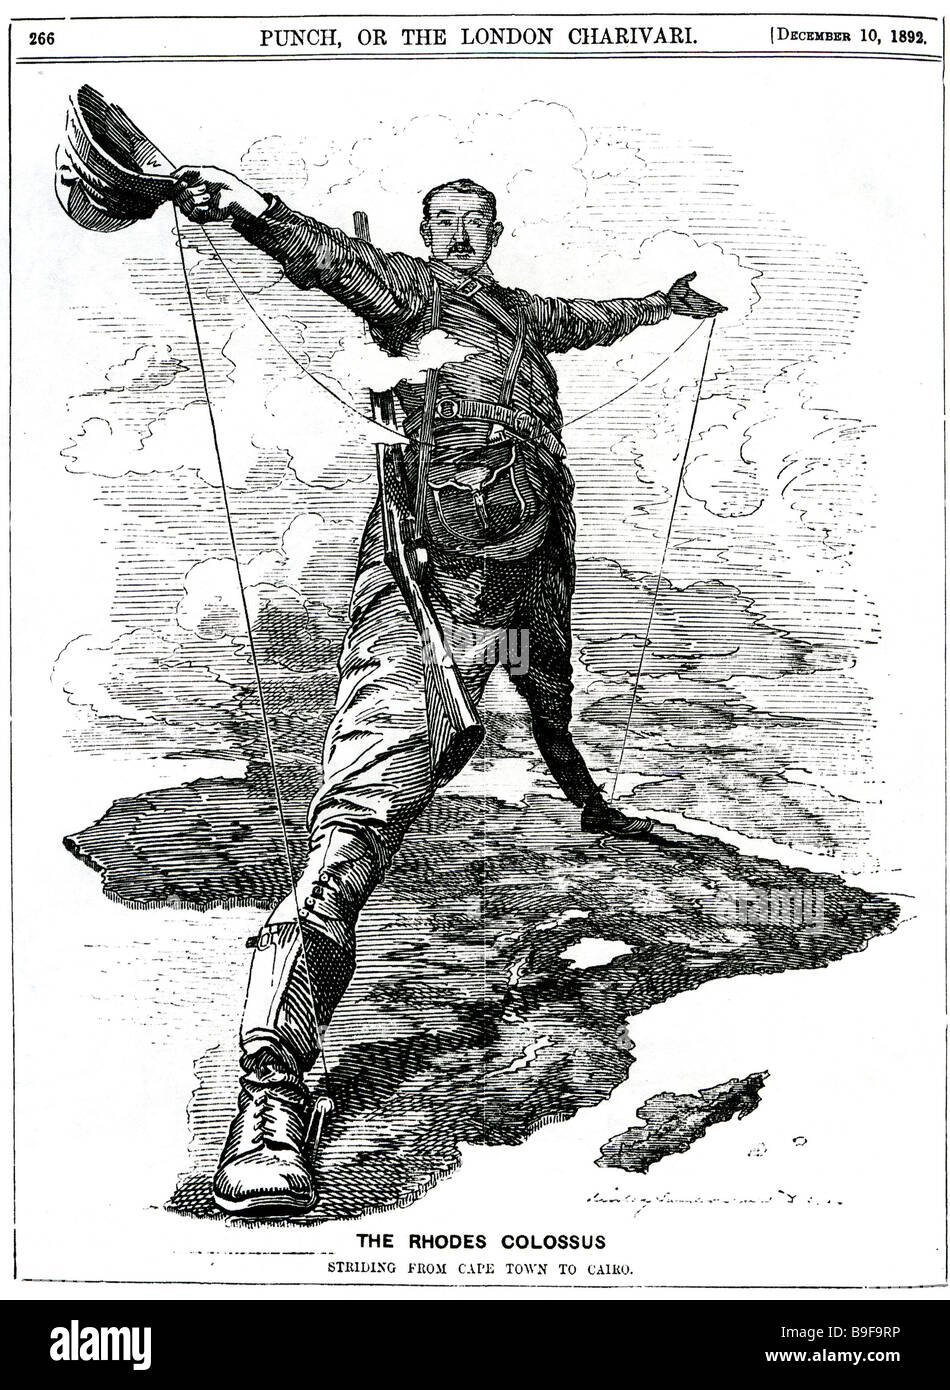 CECIL RHODES Punch cartoon illustrating Rhodes ambitions for a trans-African railway - Stock Image